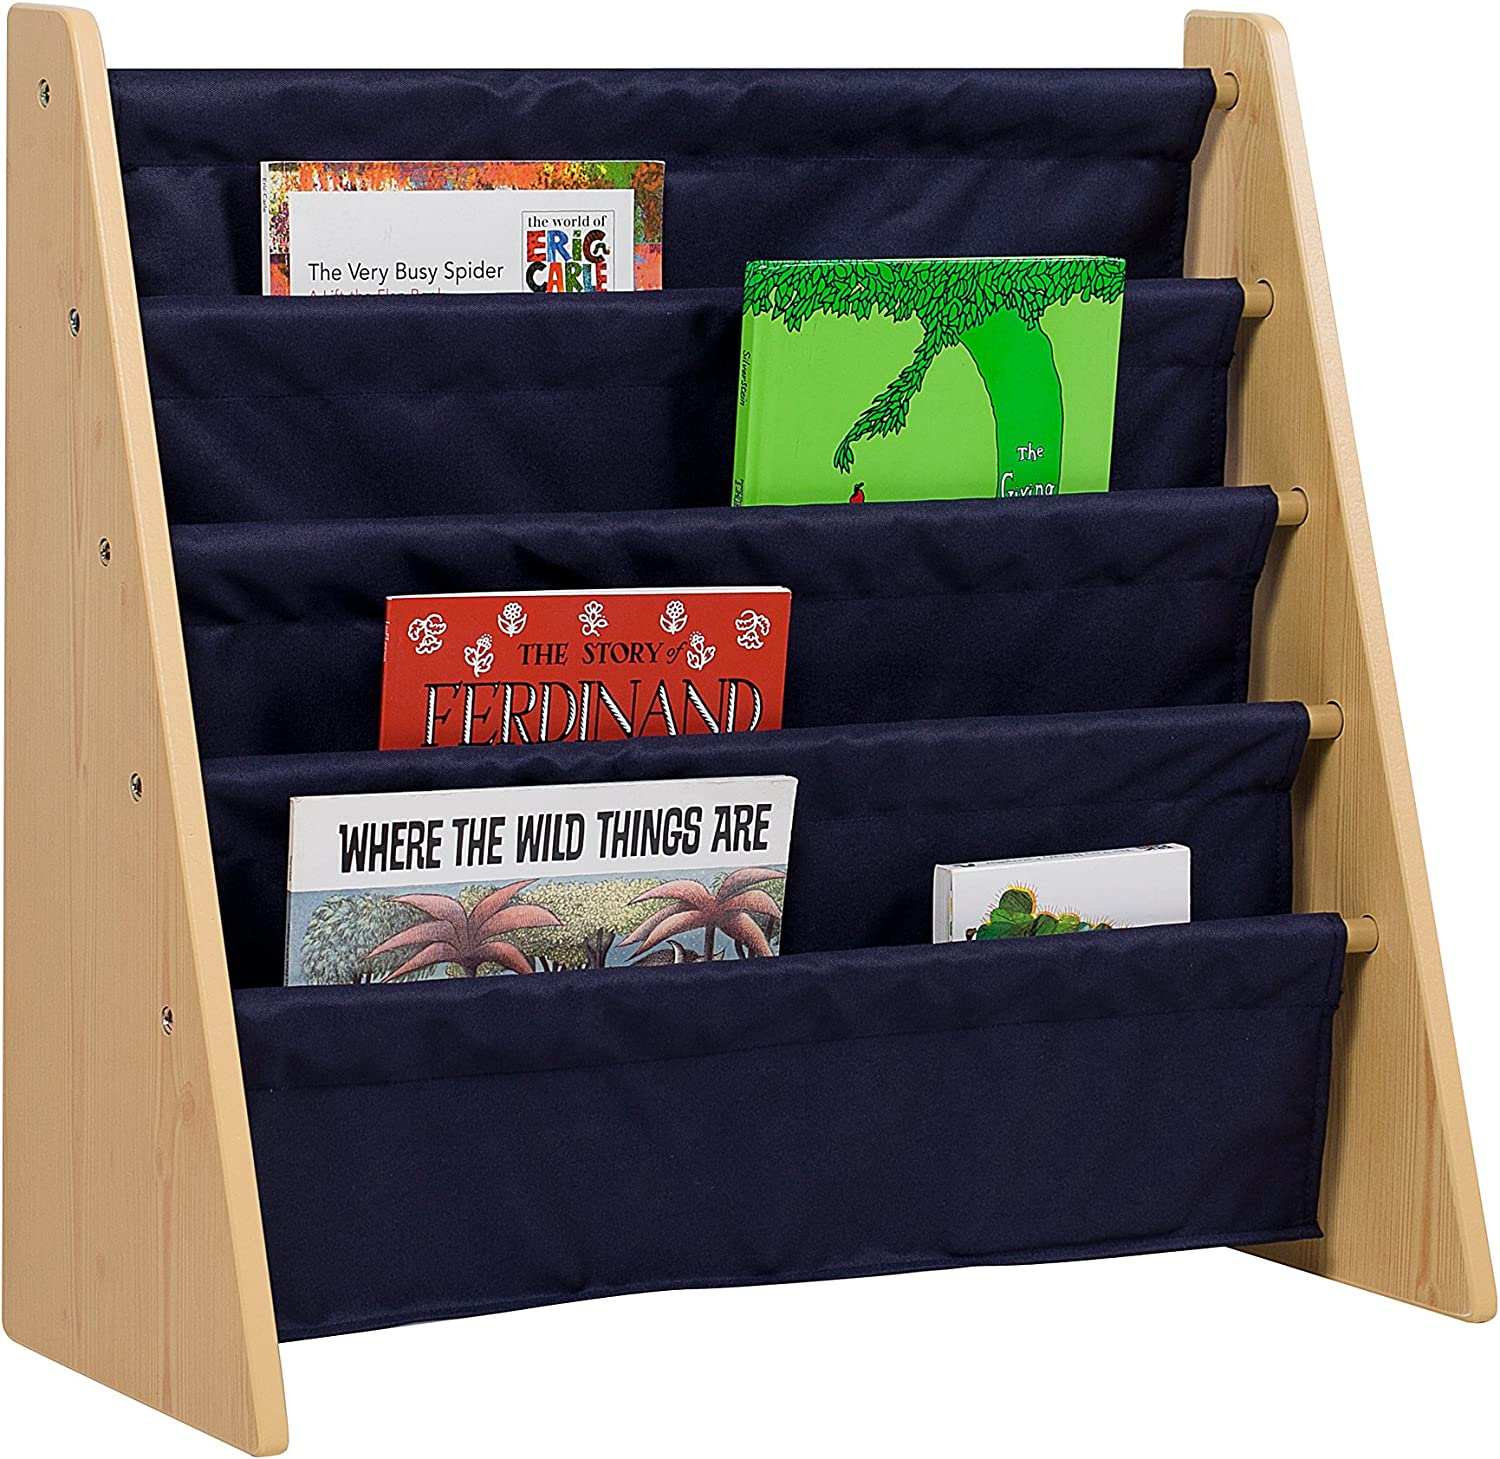 Wildkin Sling Bookshelf, Features Durable Fabric and Wood Design, Perfect for Encouraging Organization and Making Reading Easy and Fun for Young Readers - Natural with bluee